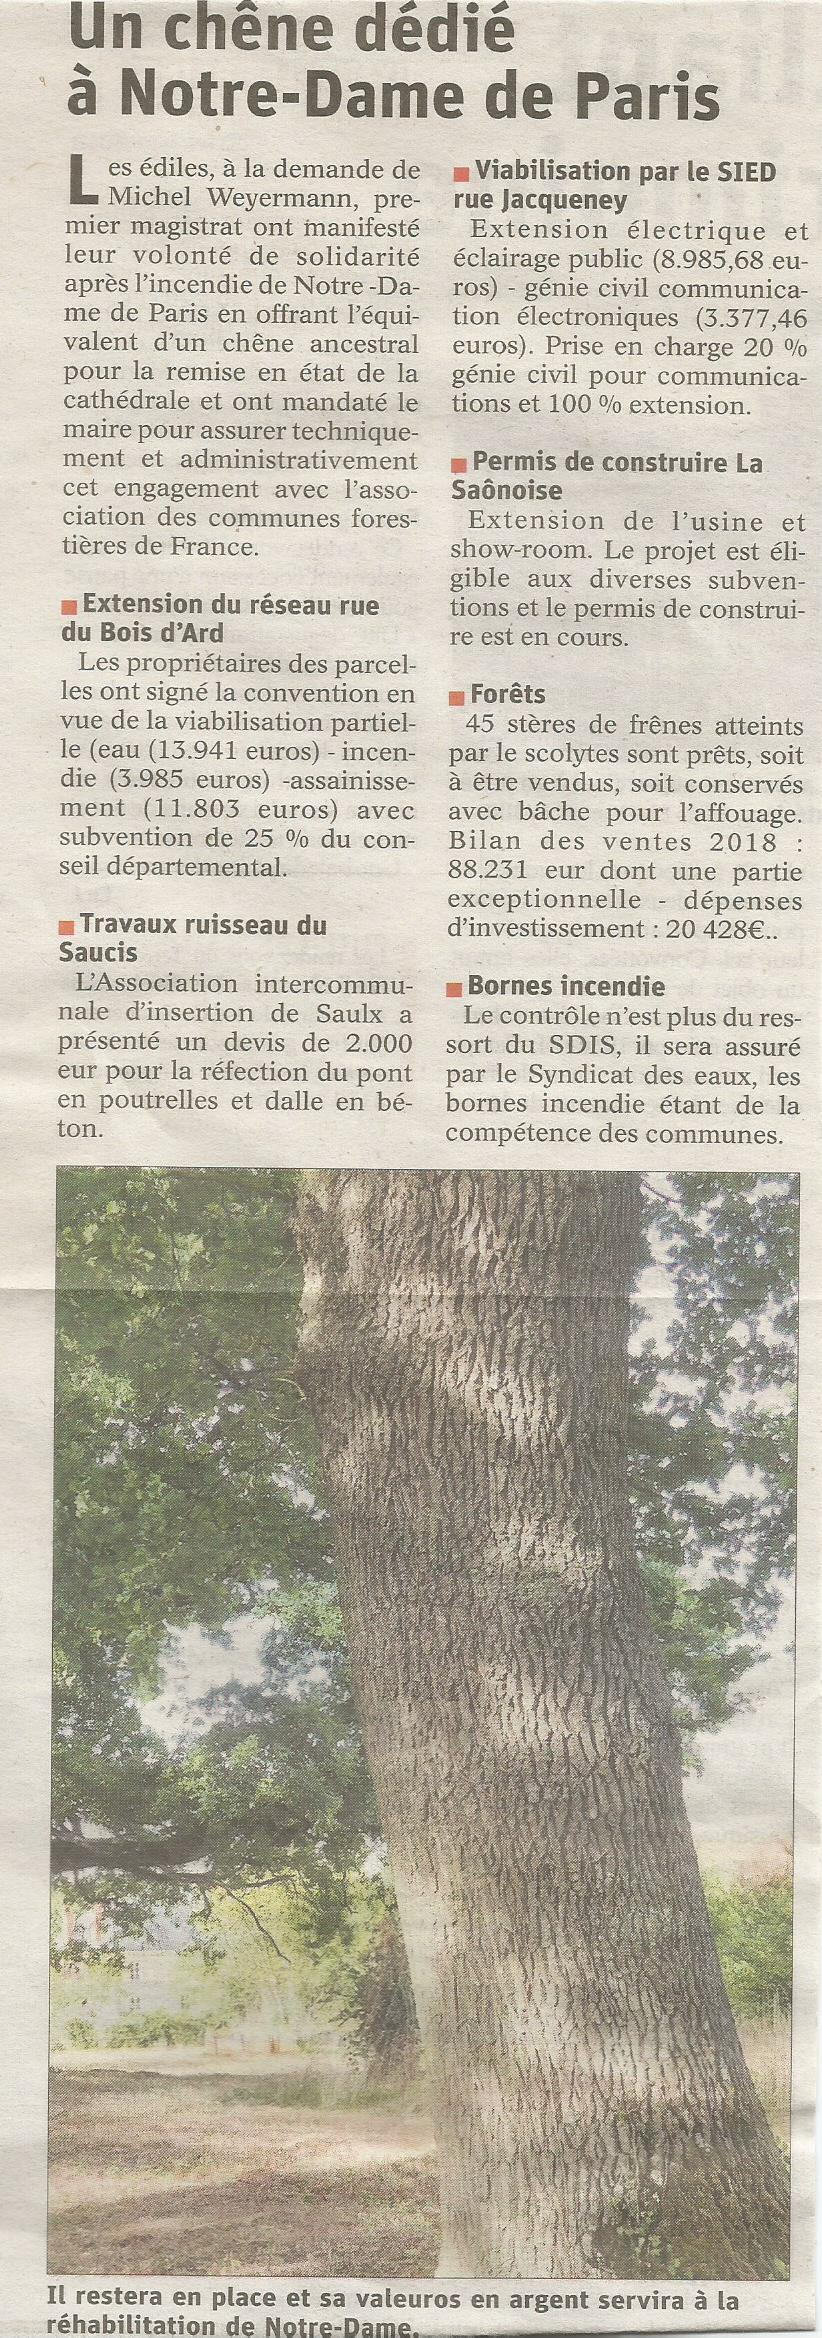 https://www.villers-les-luxeuil.com/projets/villers/files/images/2019_Mairie/Presse/Presse_2019_08_24.jpg